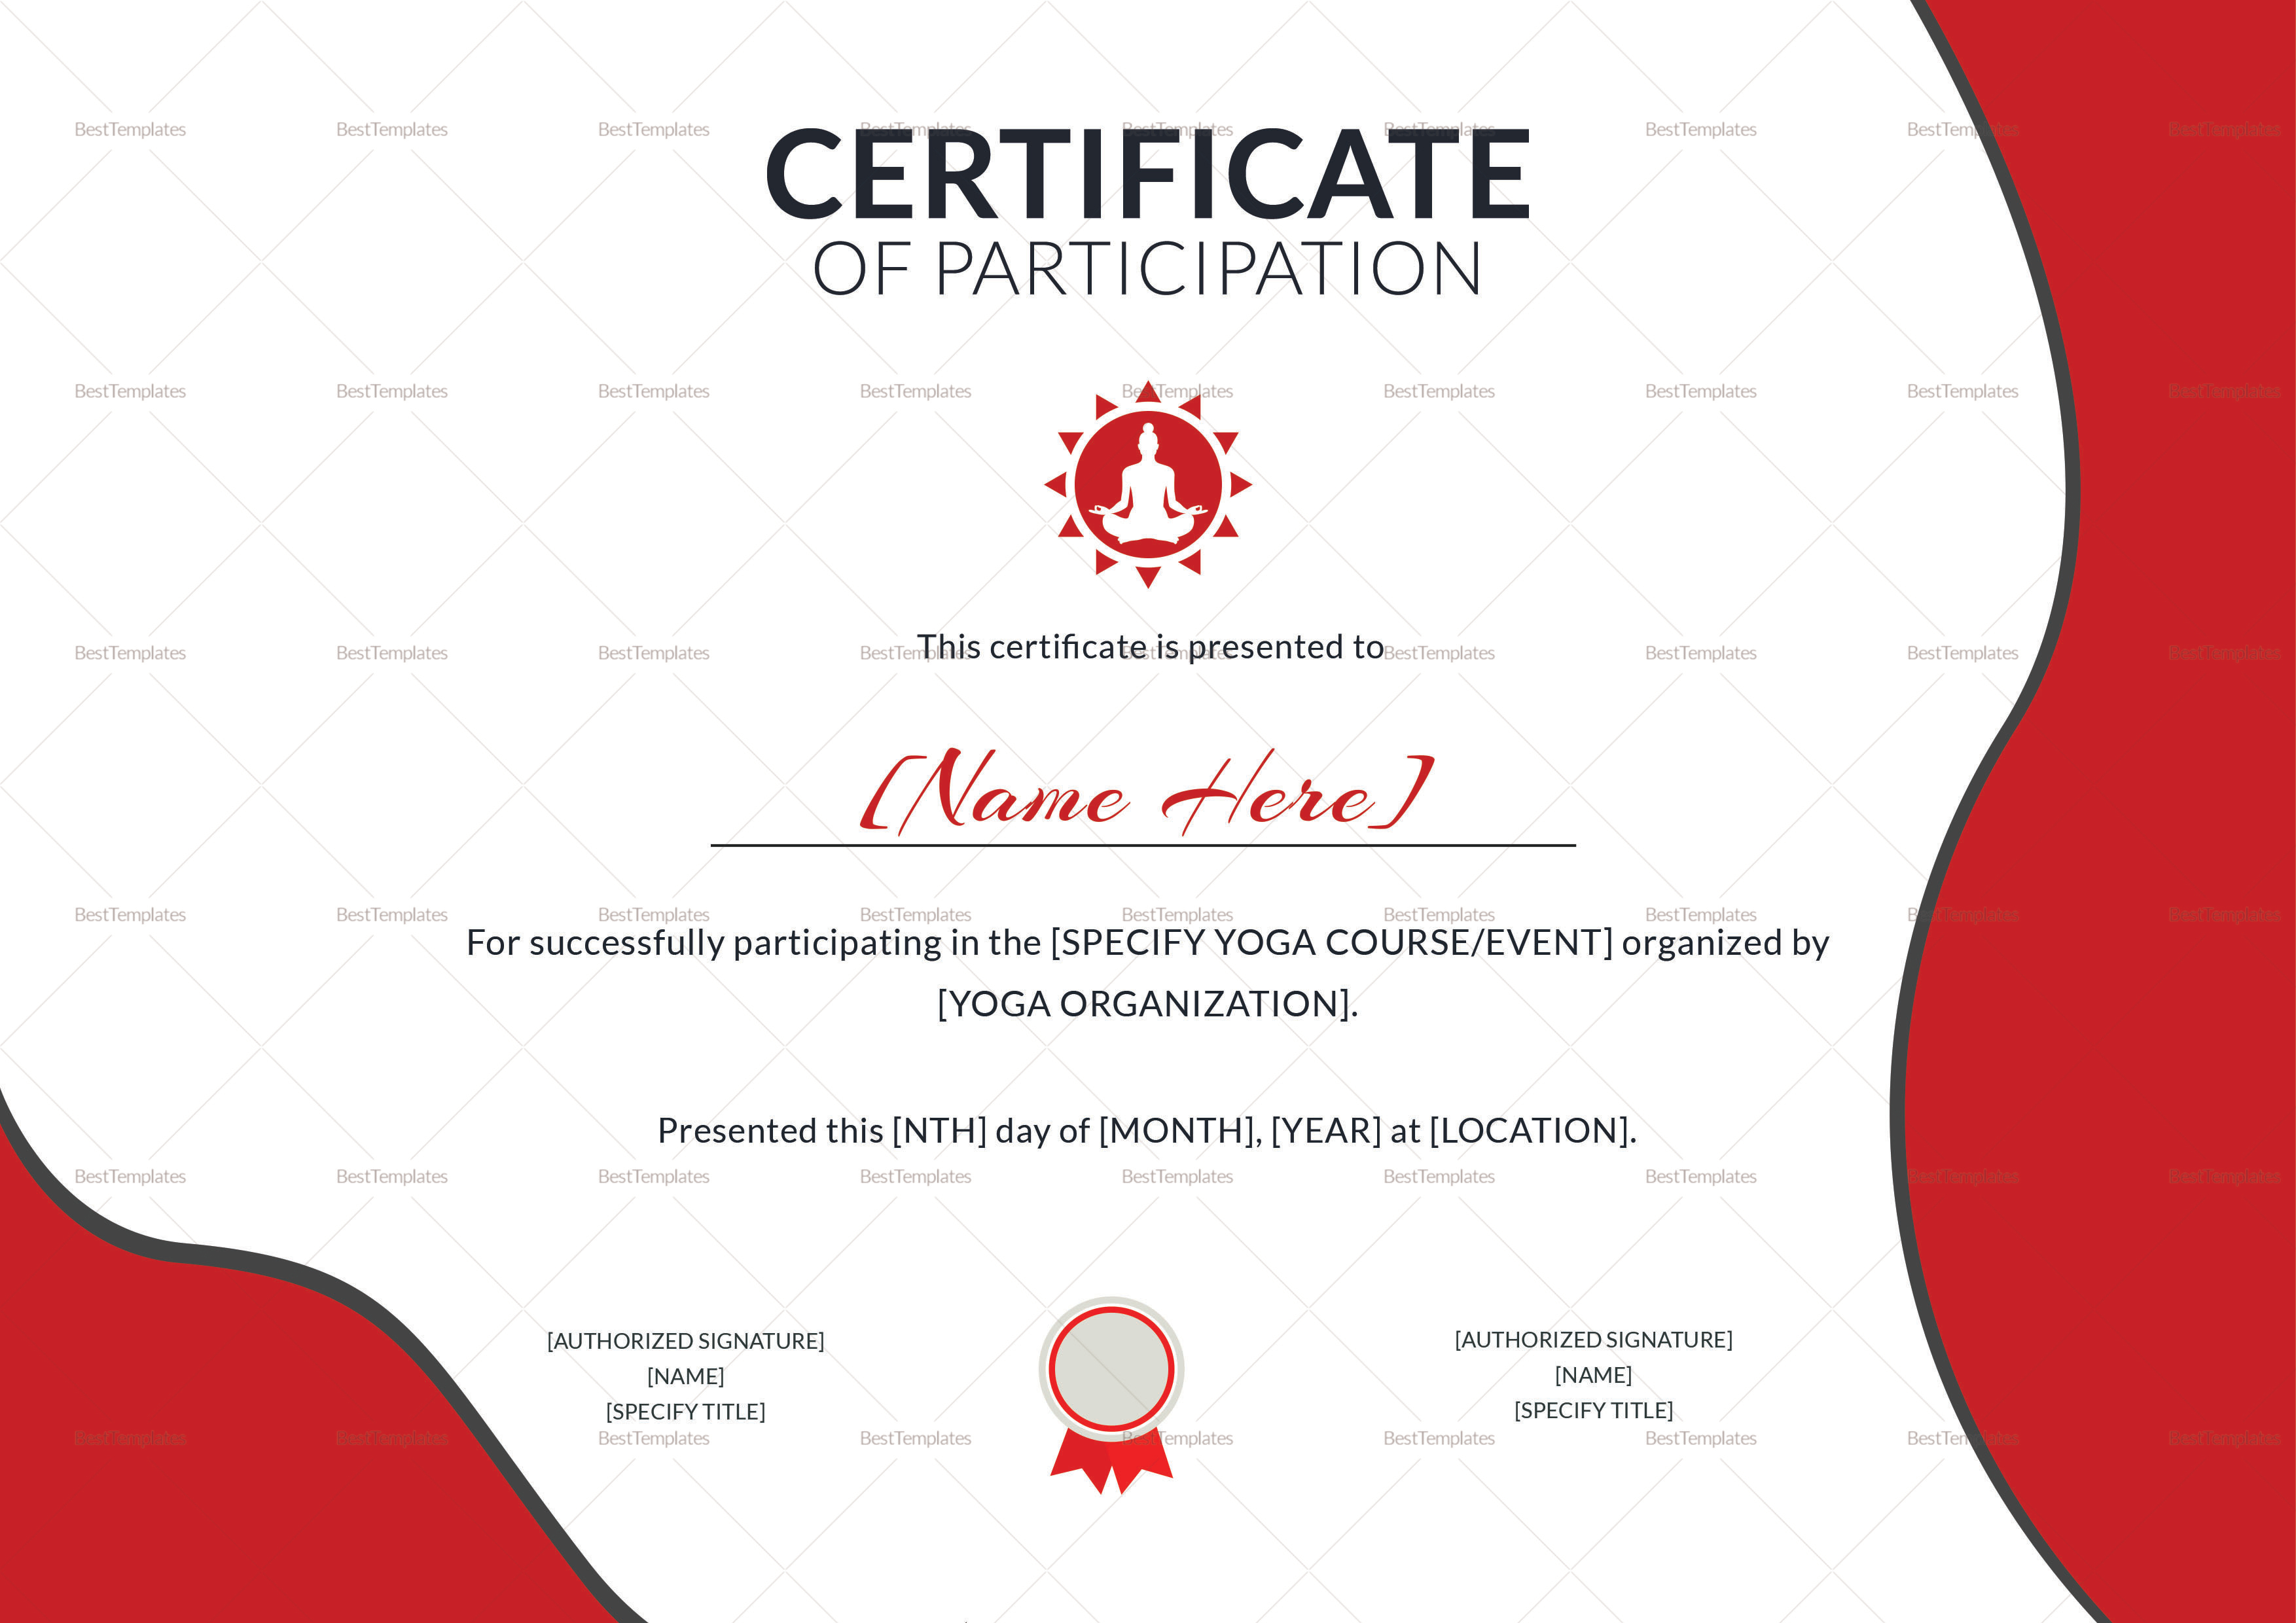 Certificate Of Participation Template Free Yoga Participation Certificate Design Template In PSD Word